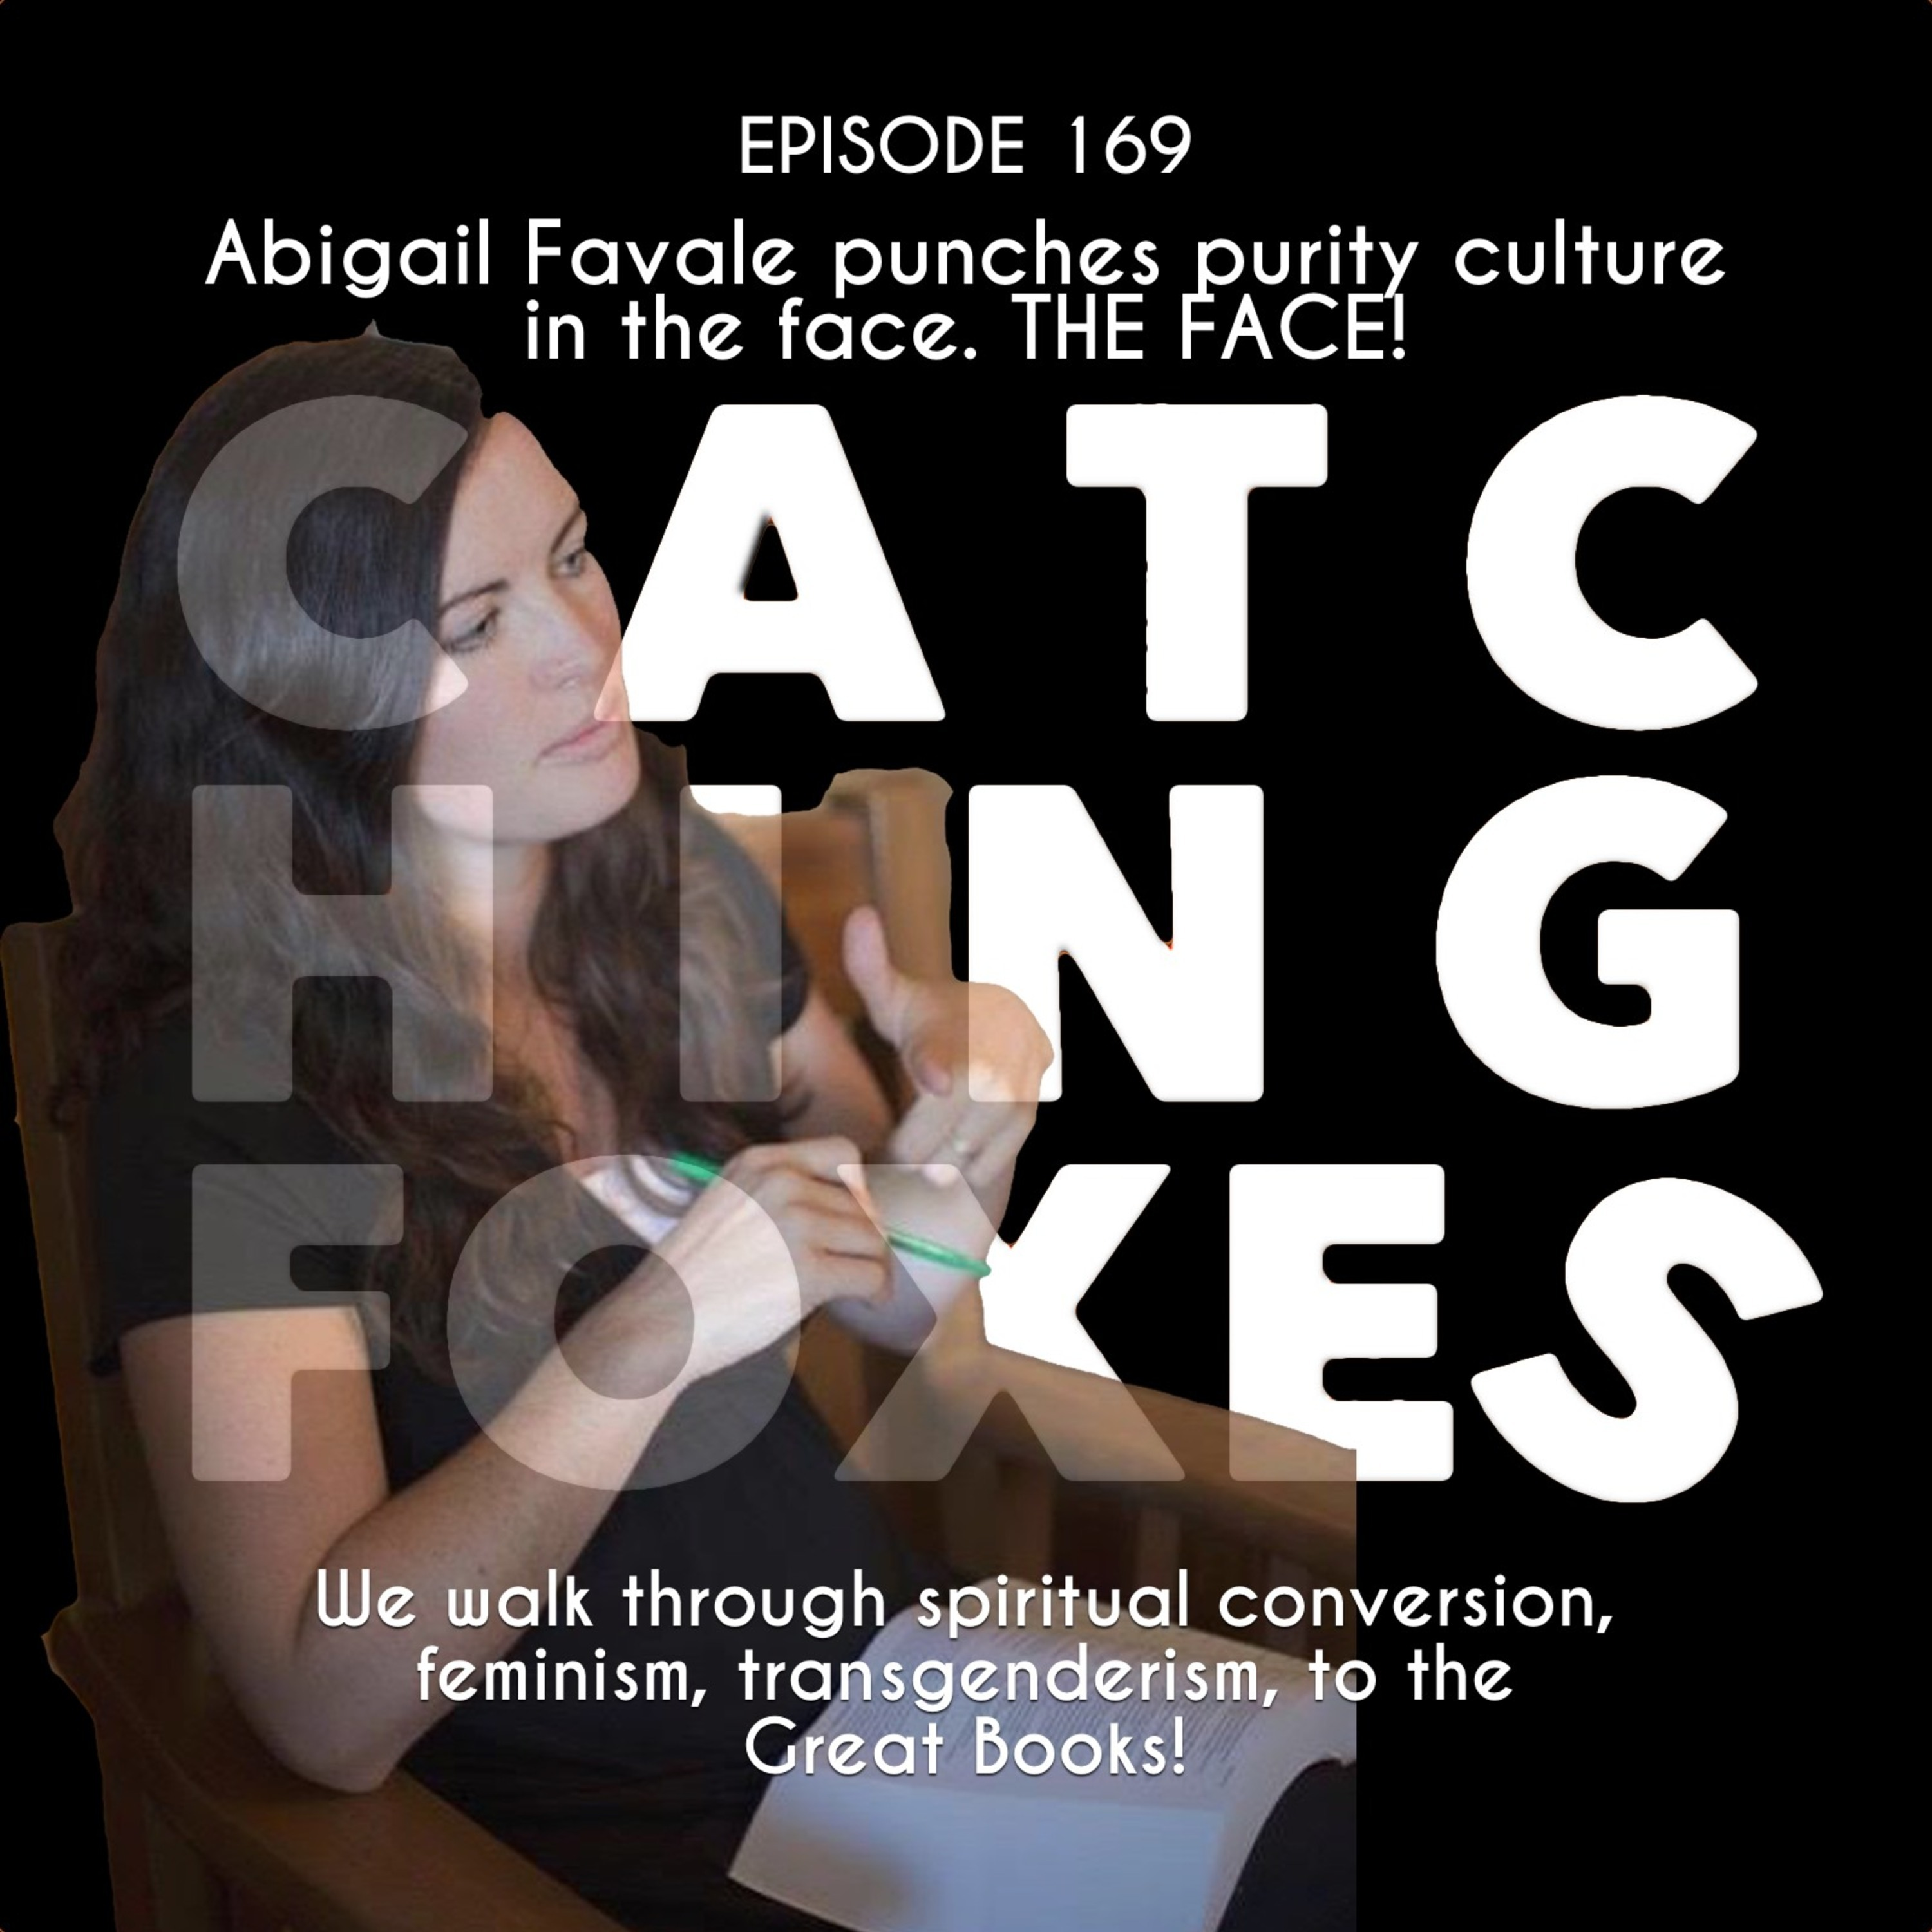 Abigail Punches 'Purity Culture' in the Face. THE FACE!